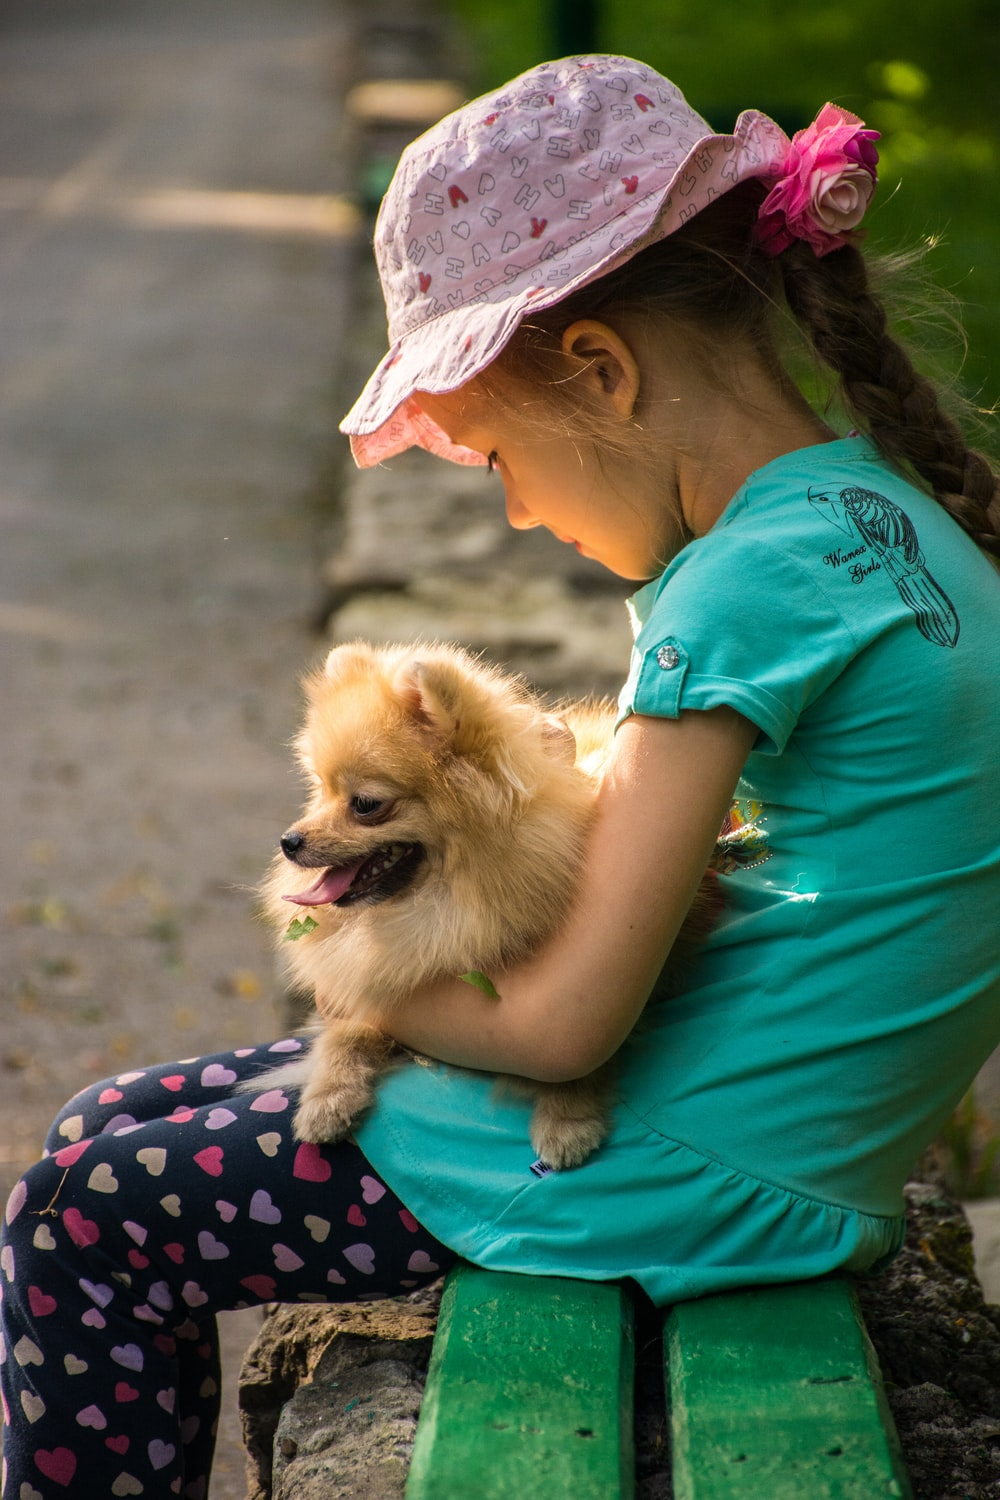 girl sitting and carrying brown Pomeranian puppy